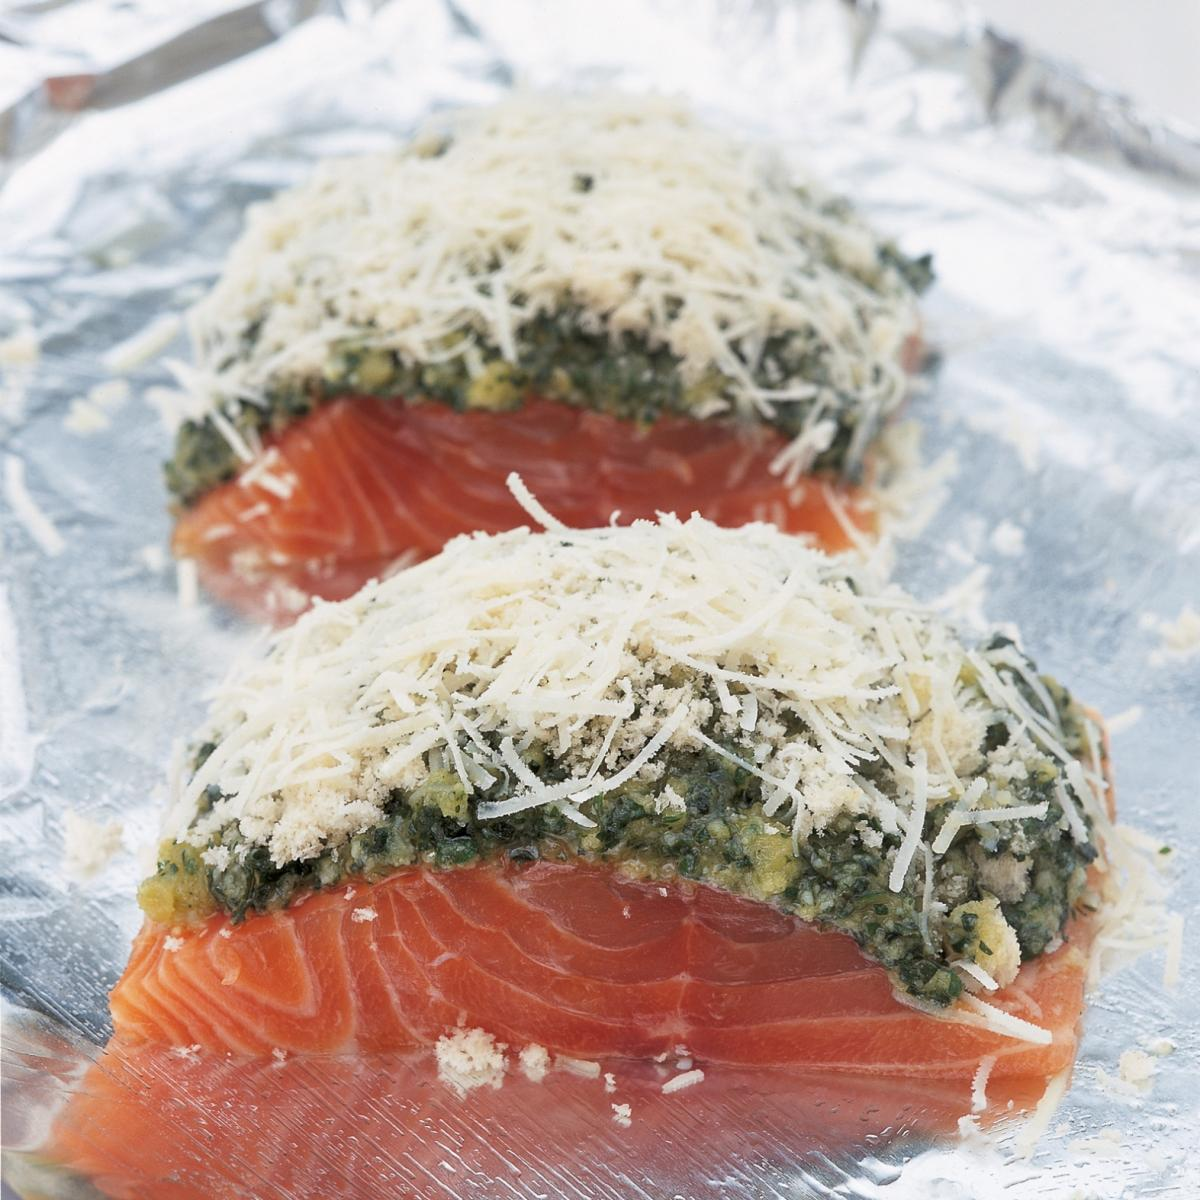 Foil baked salmon served with english parsley sauce recipes a picture of delias roasted salmon fillets with a crusted pecorino and pesto topping recipe ccuart Gallery